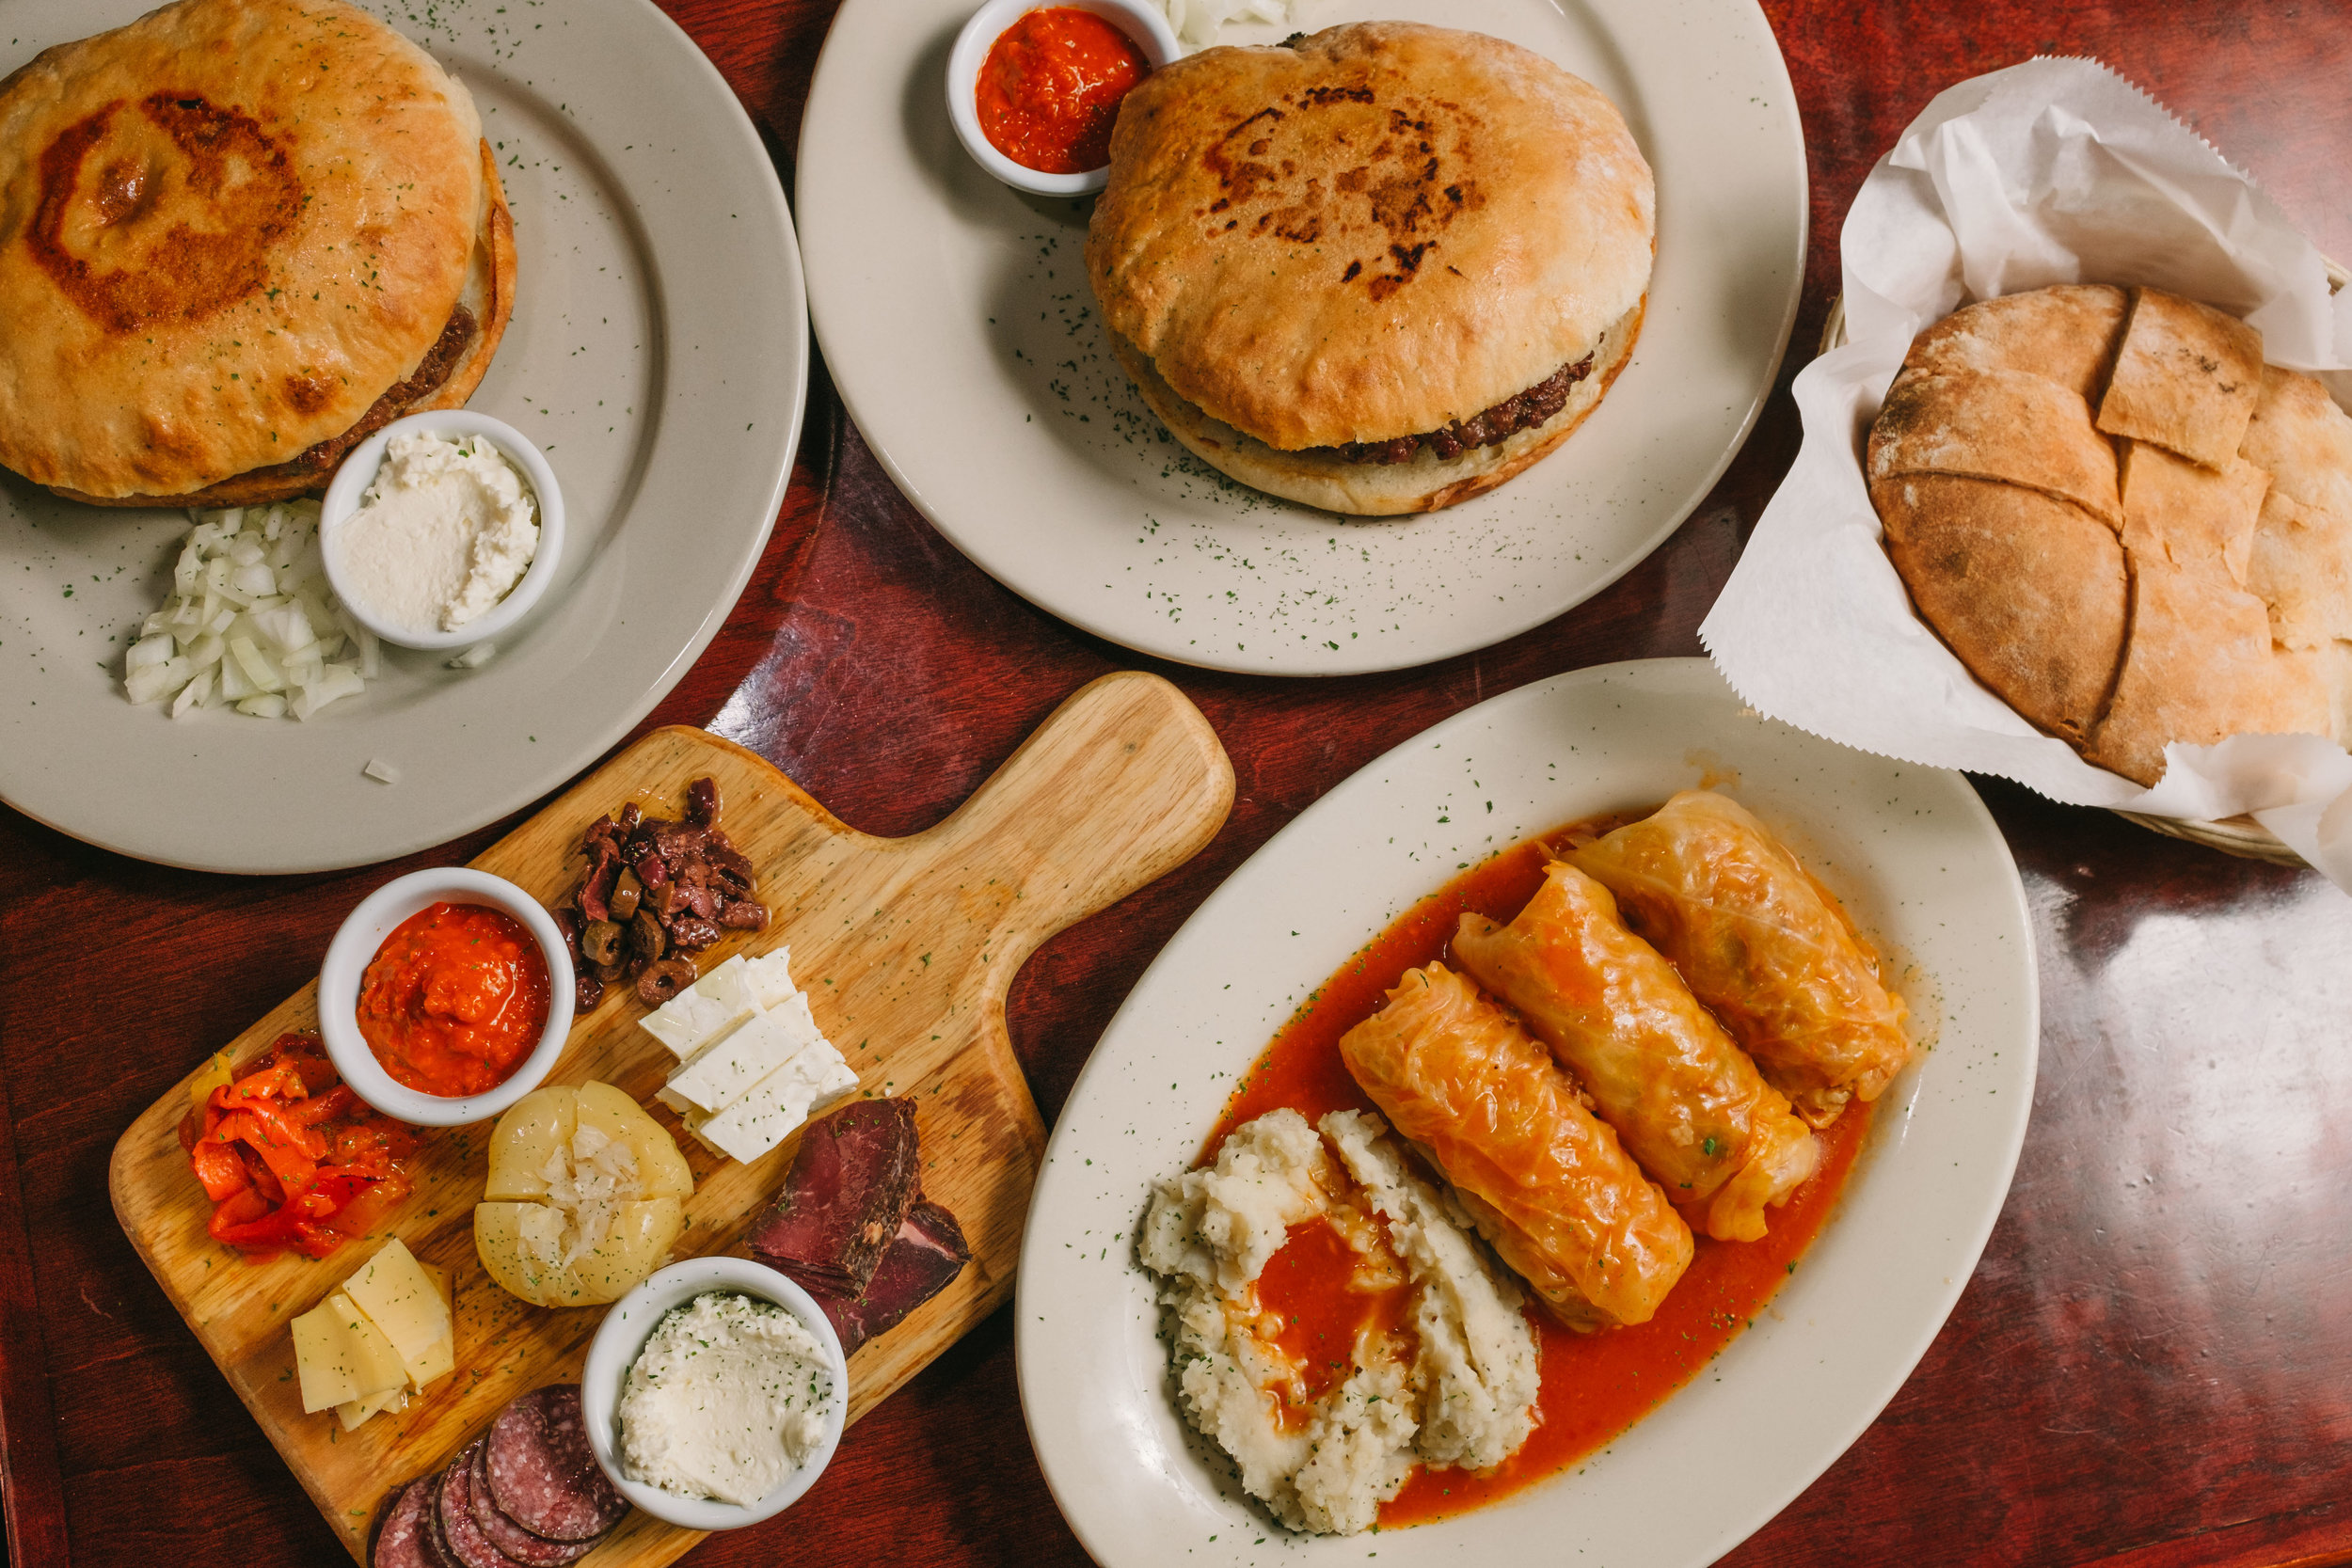 Bosnian food is a fusion of Greek, Turkish, Russian, and European flavors.